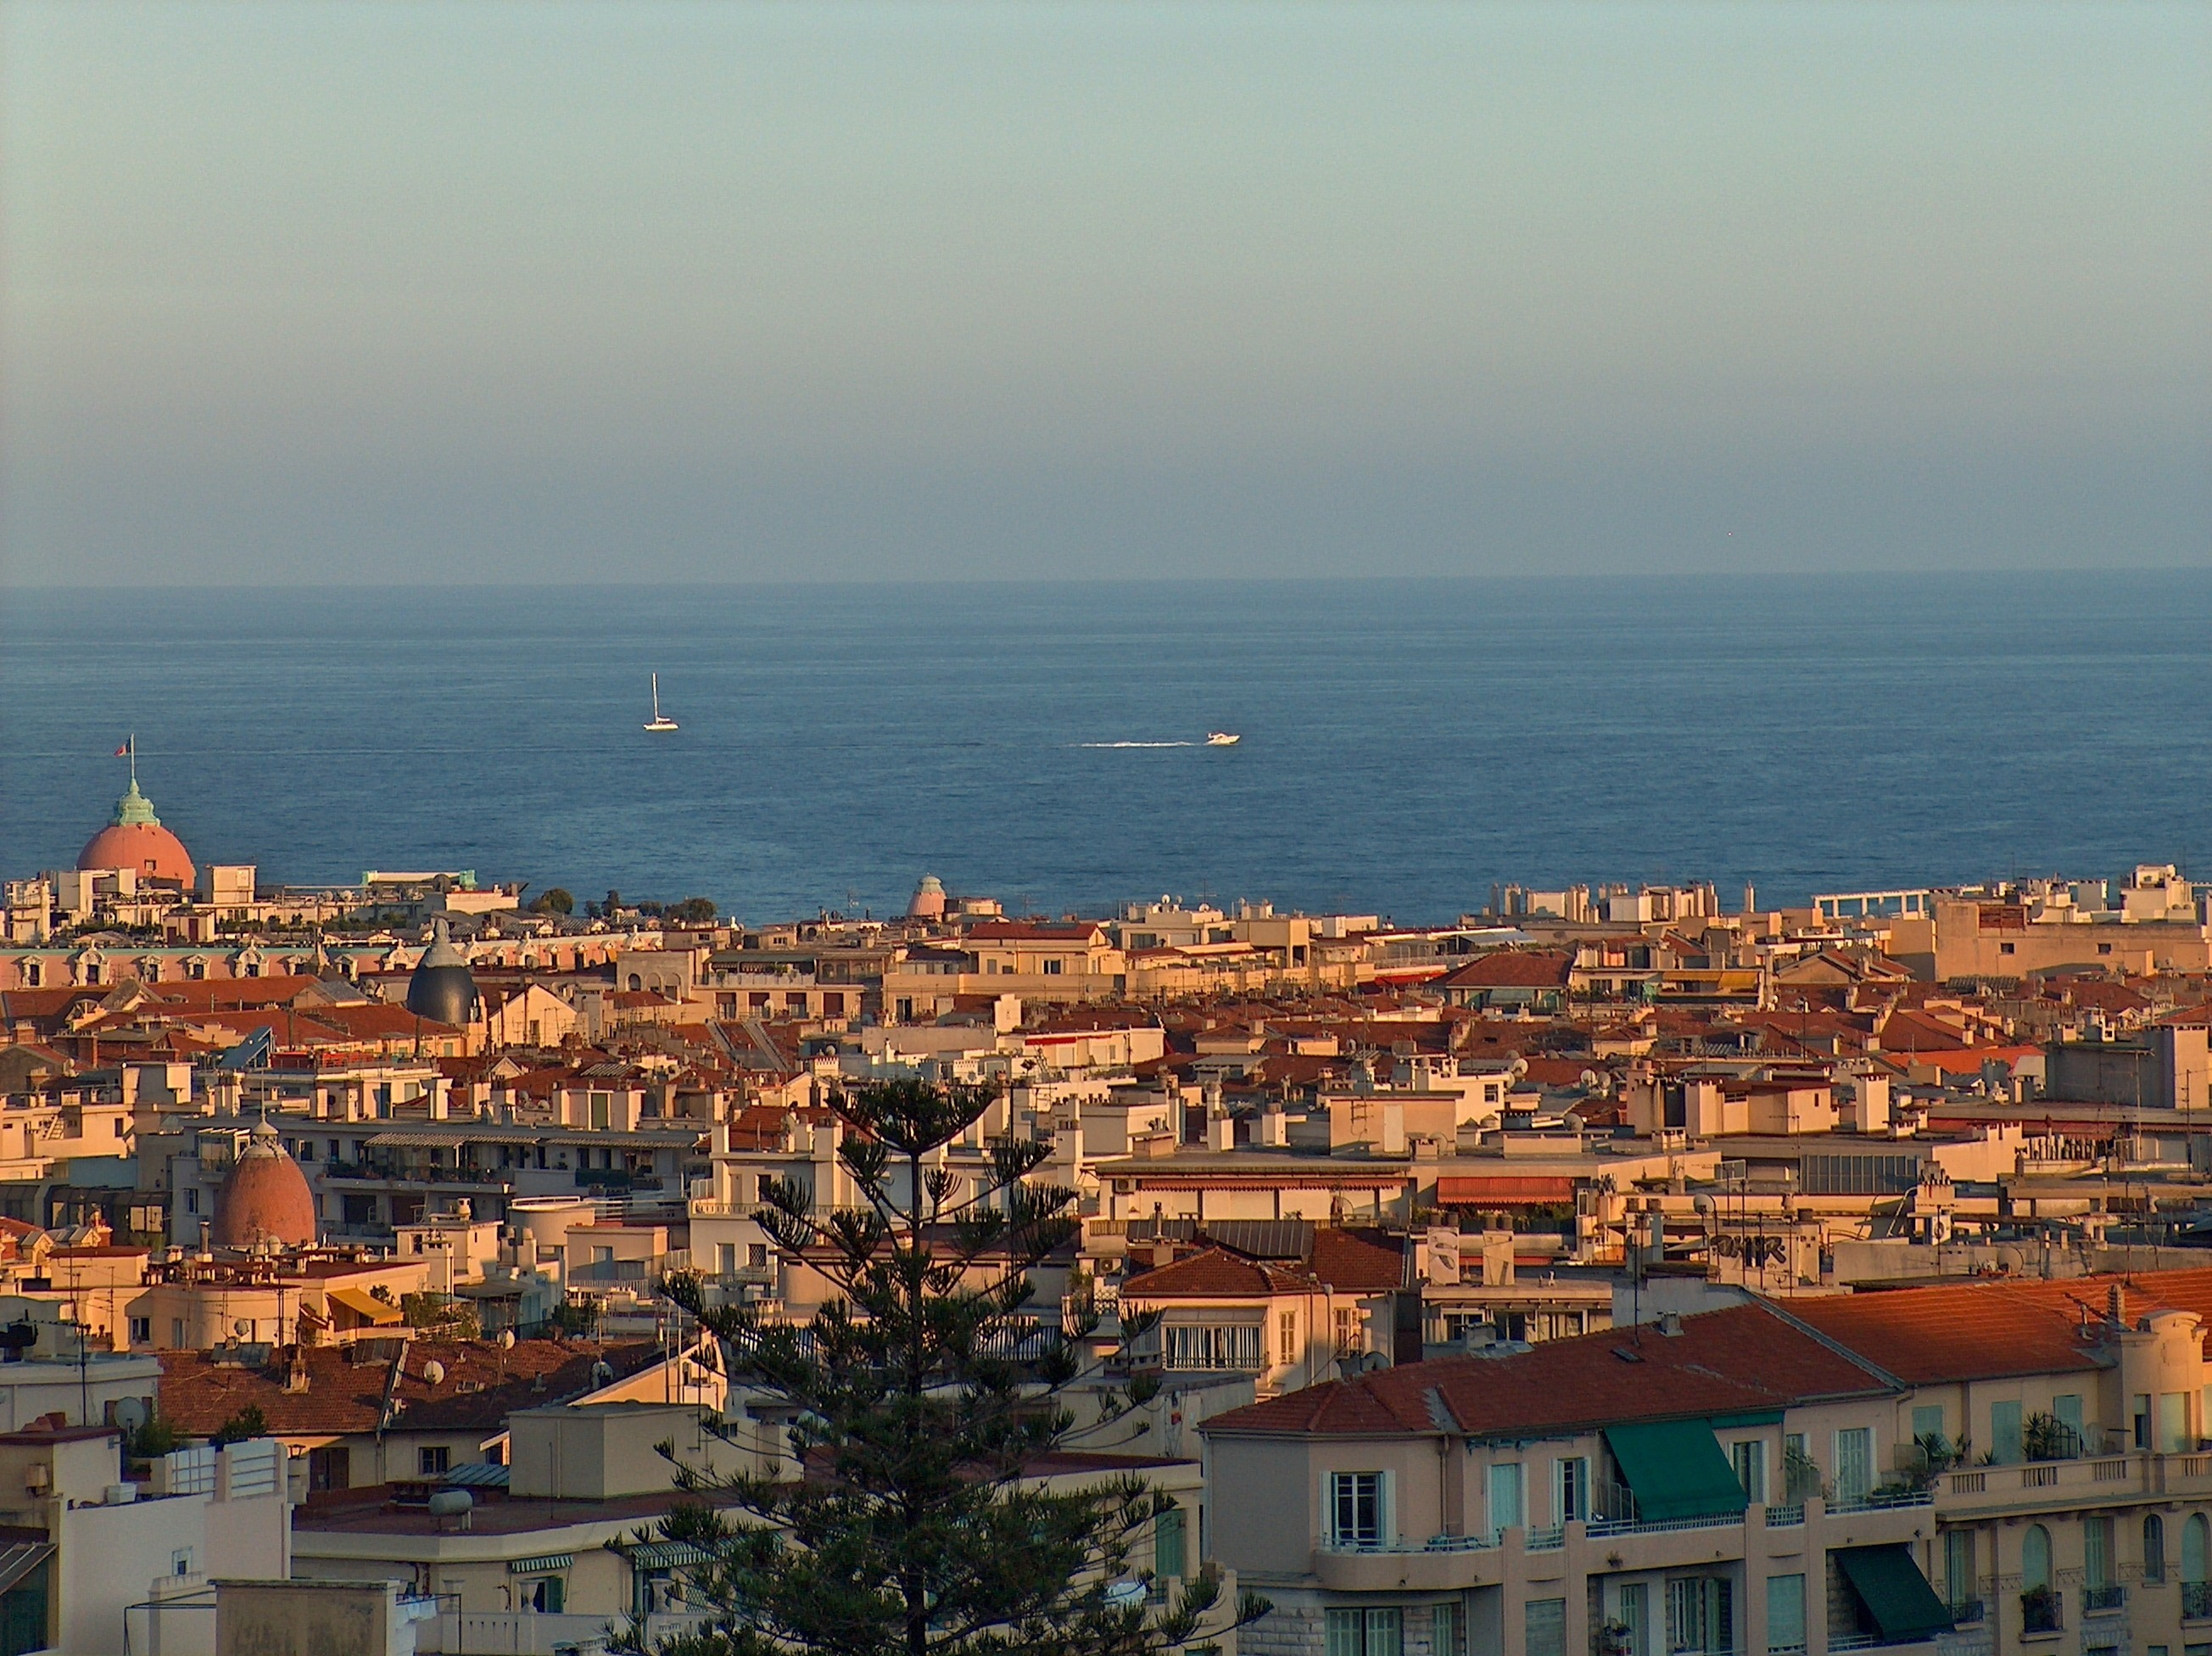 Sea France nizza cityscapes HD Wallpaper